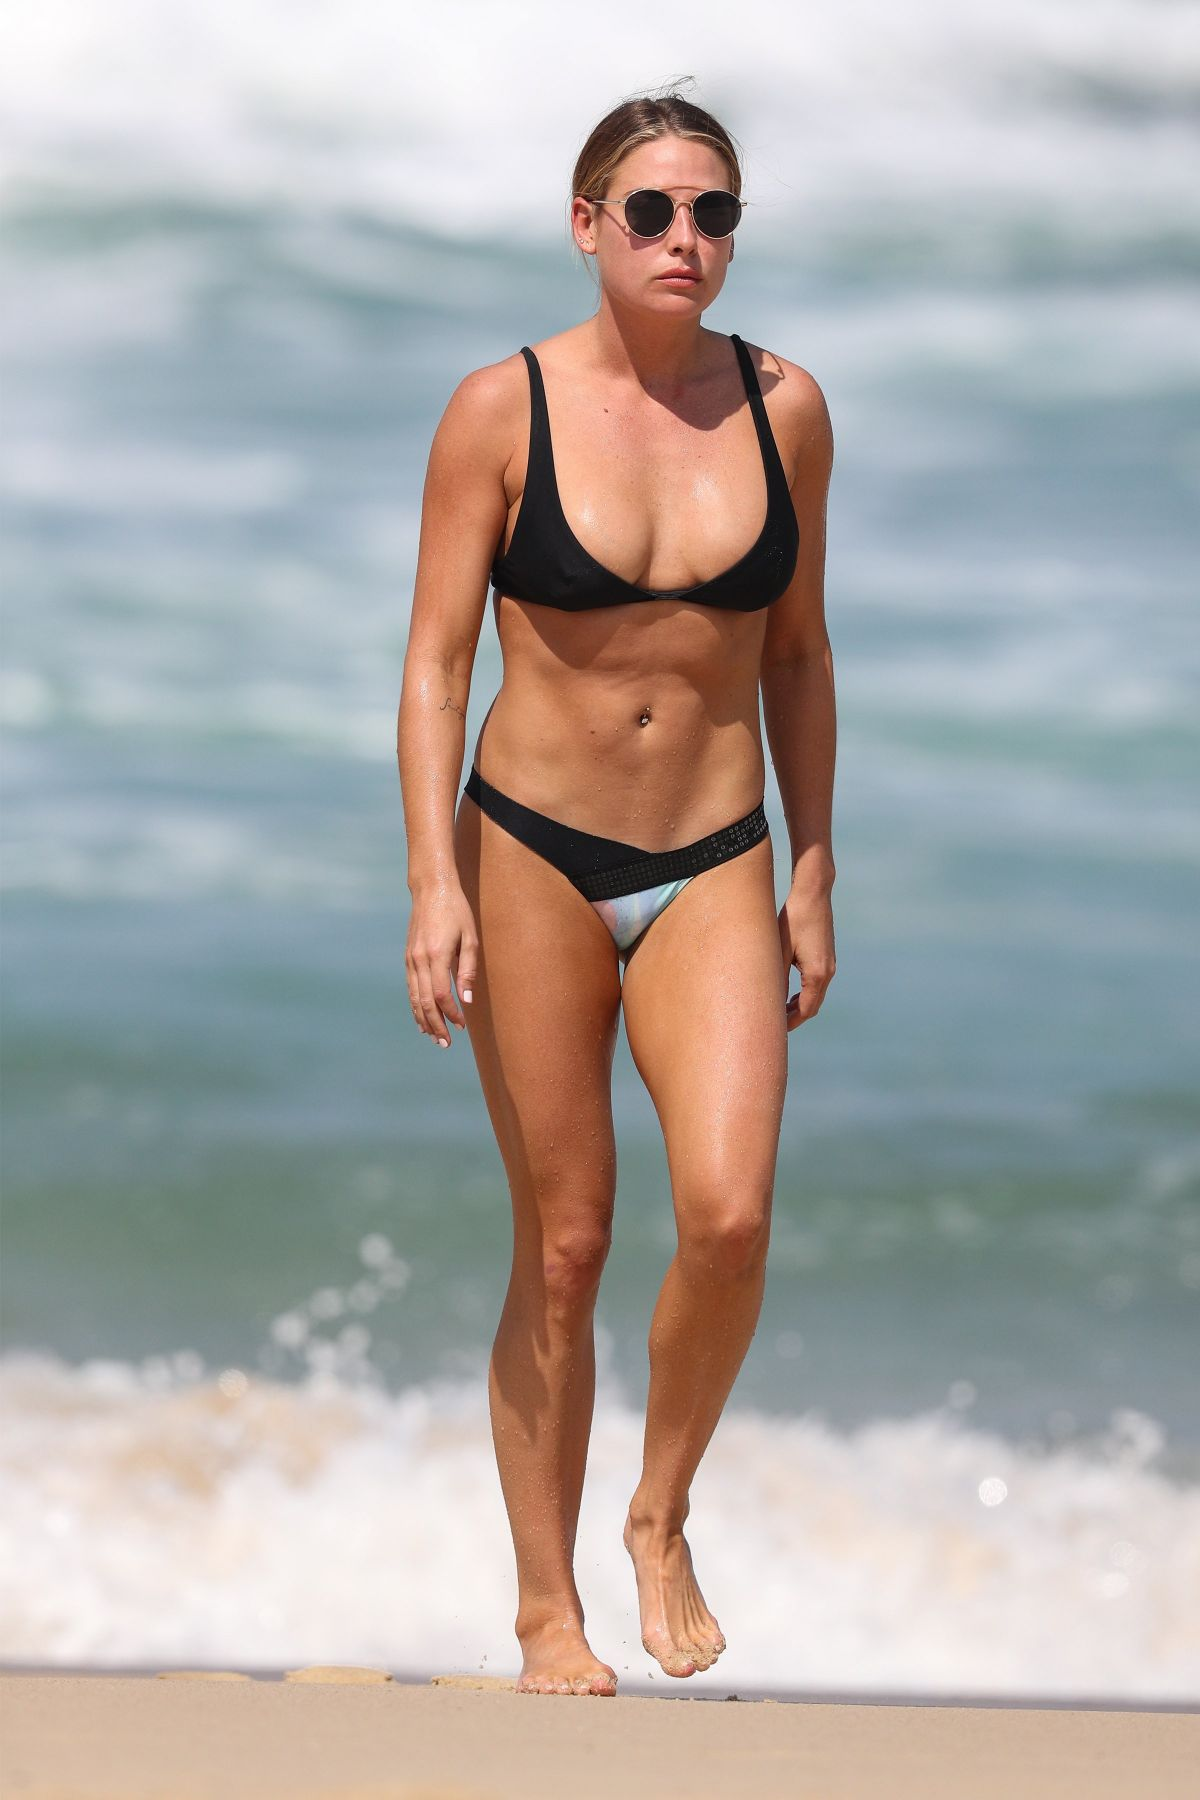 Lisa Clark in Black Bikini on a beach in Sydney Pic 7 of 35